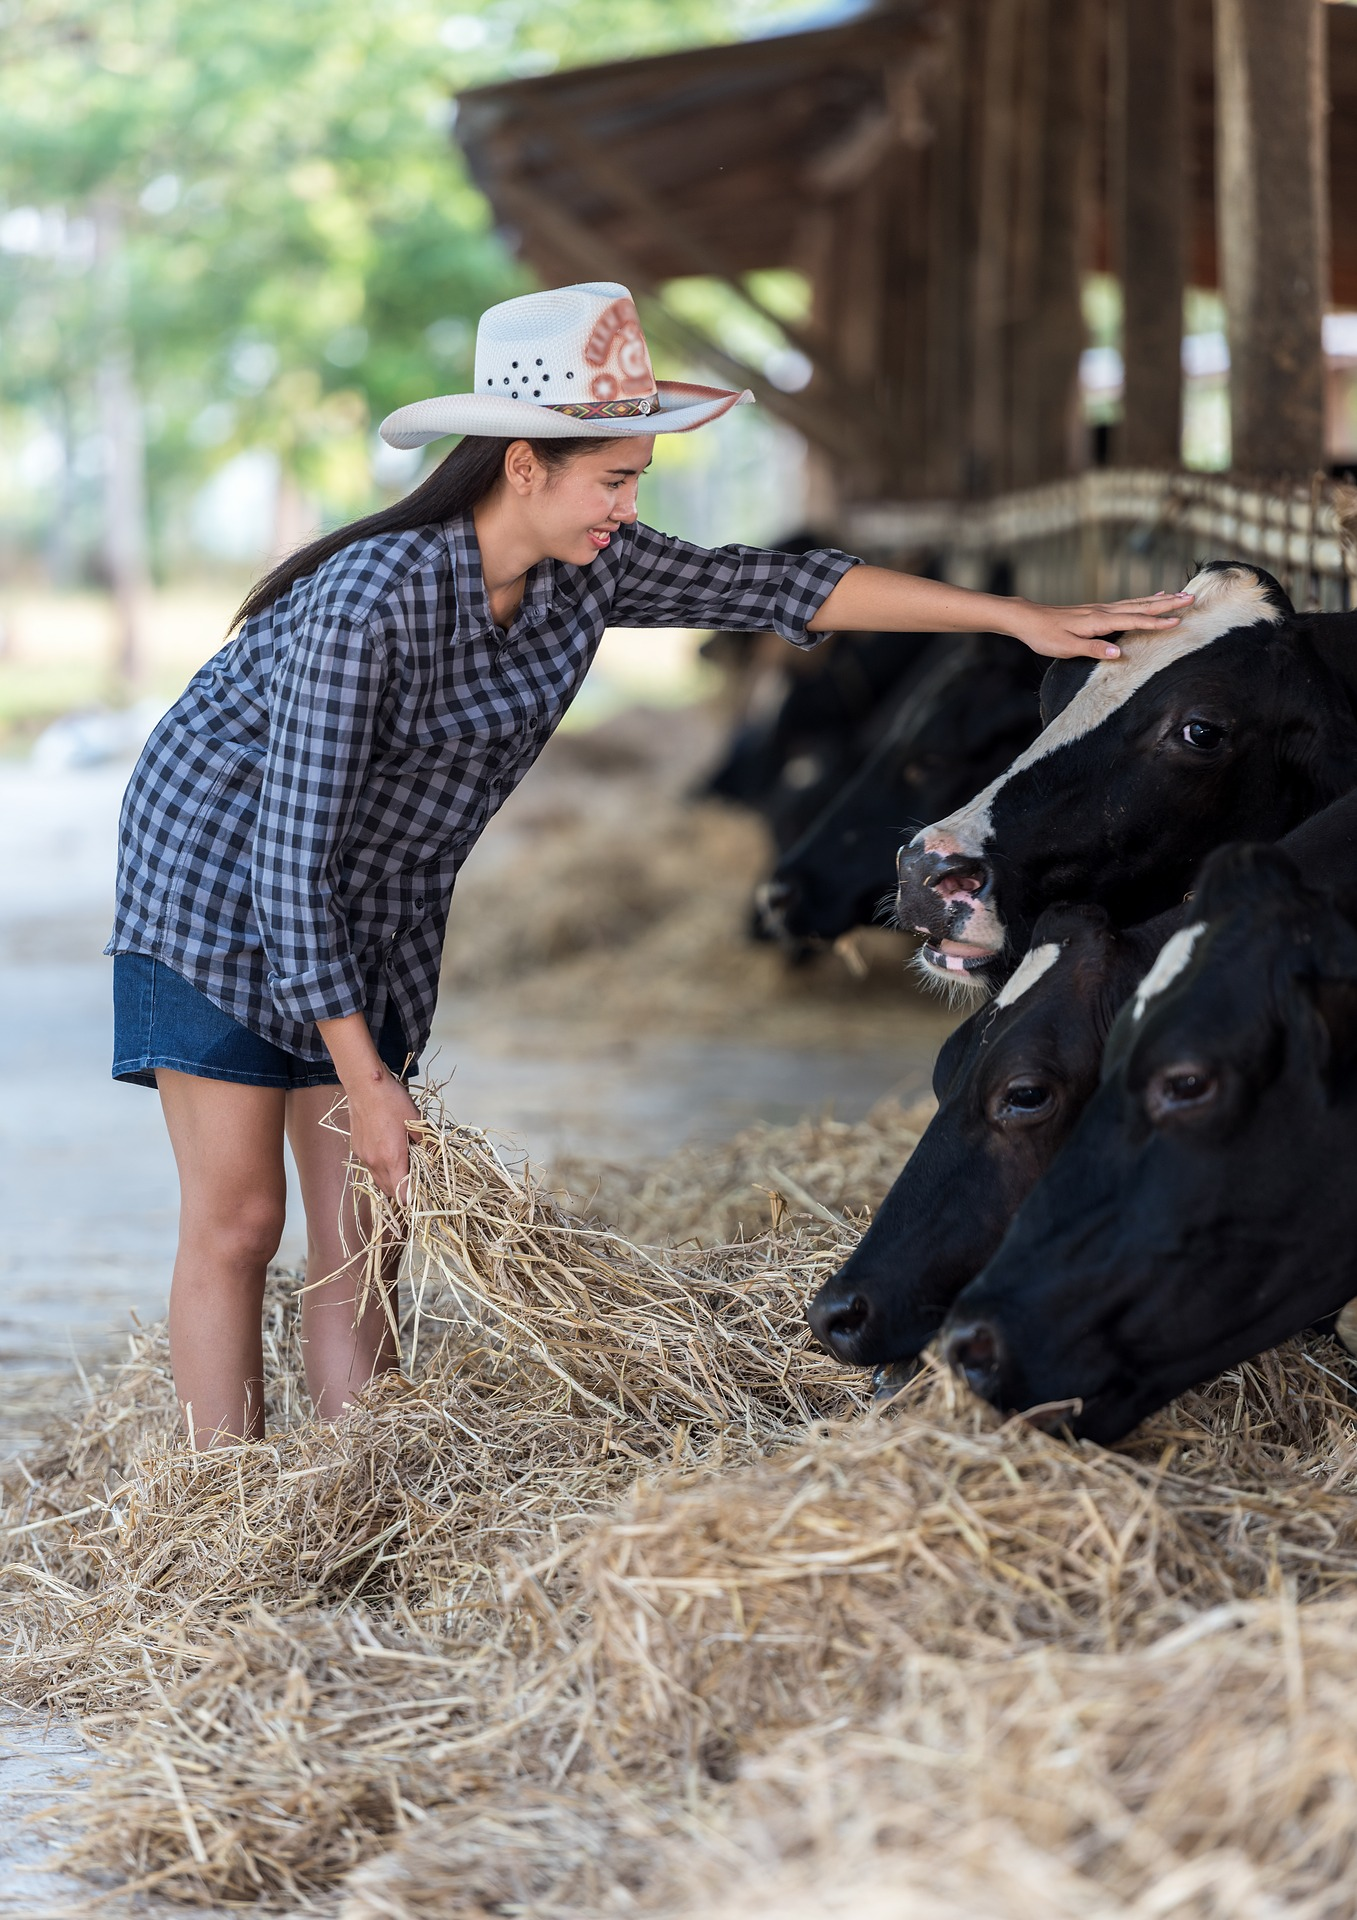 Feeding Animals, Animal, Cow, Farm, Girl, HQ Photo